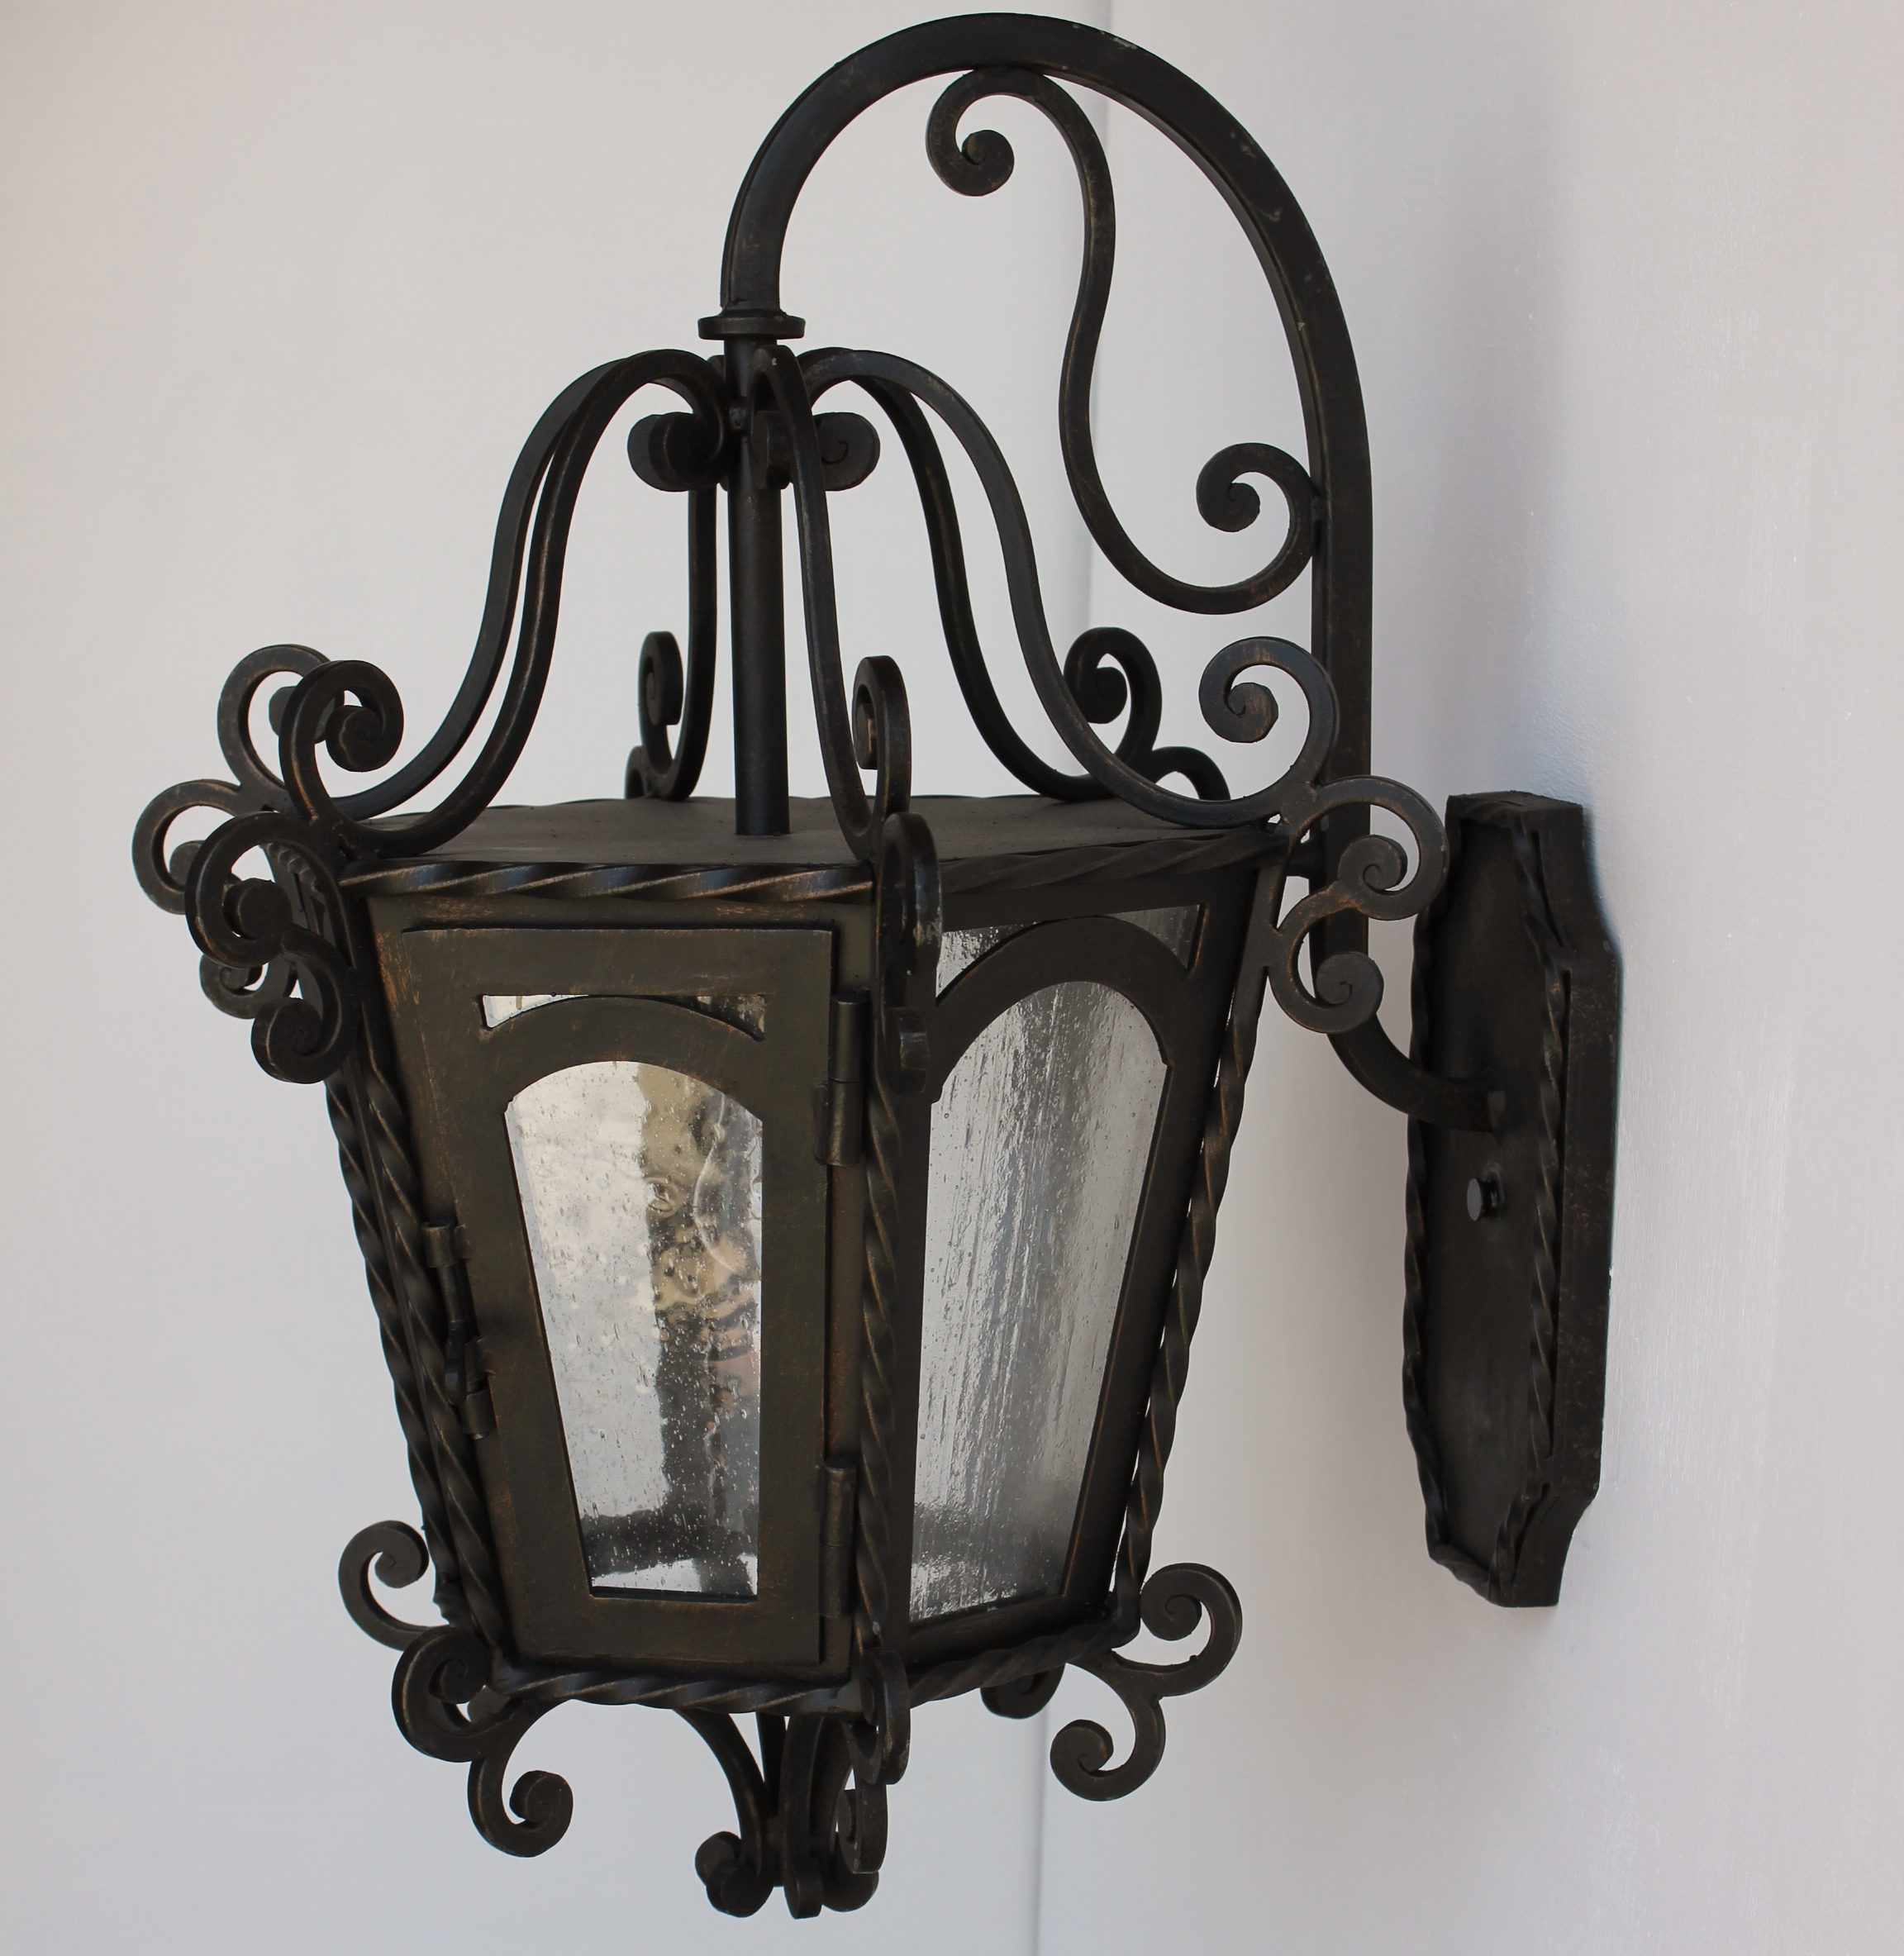 Gothic Outdoor Lighting A Property Of Dignified And